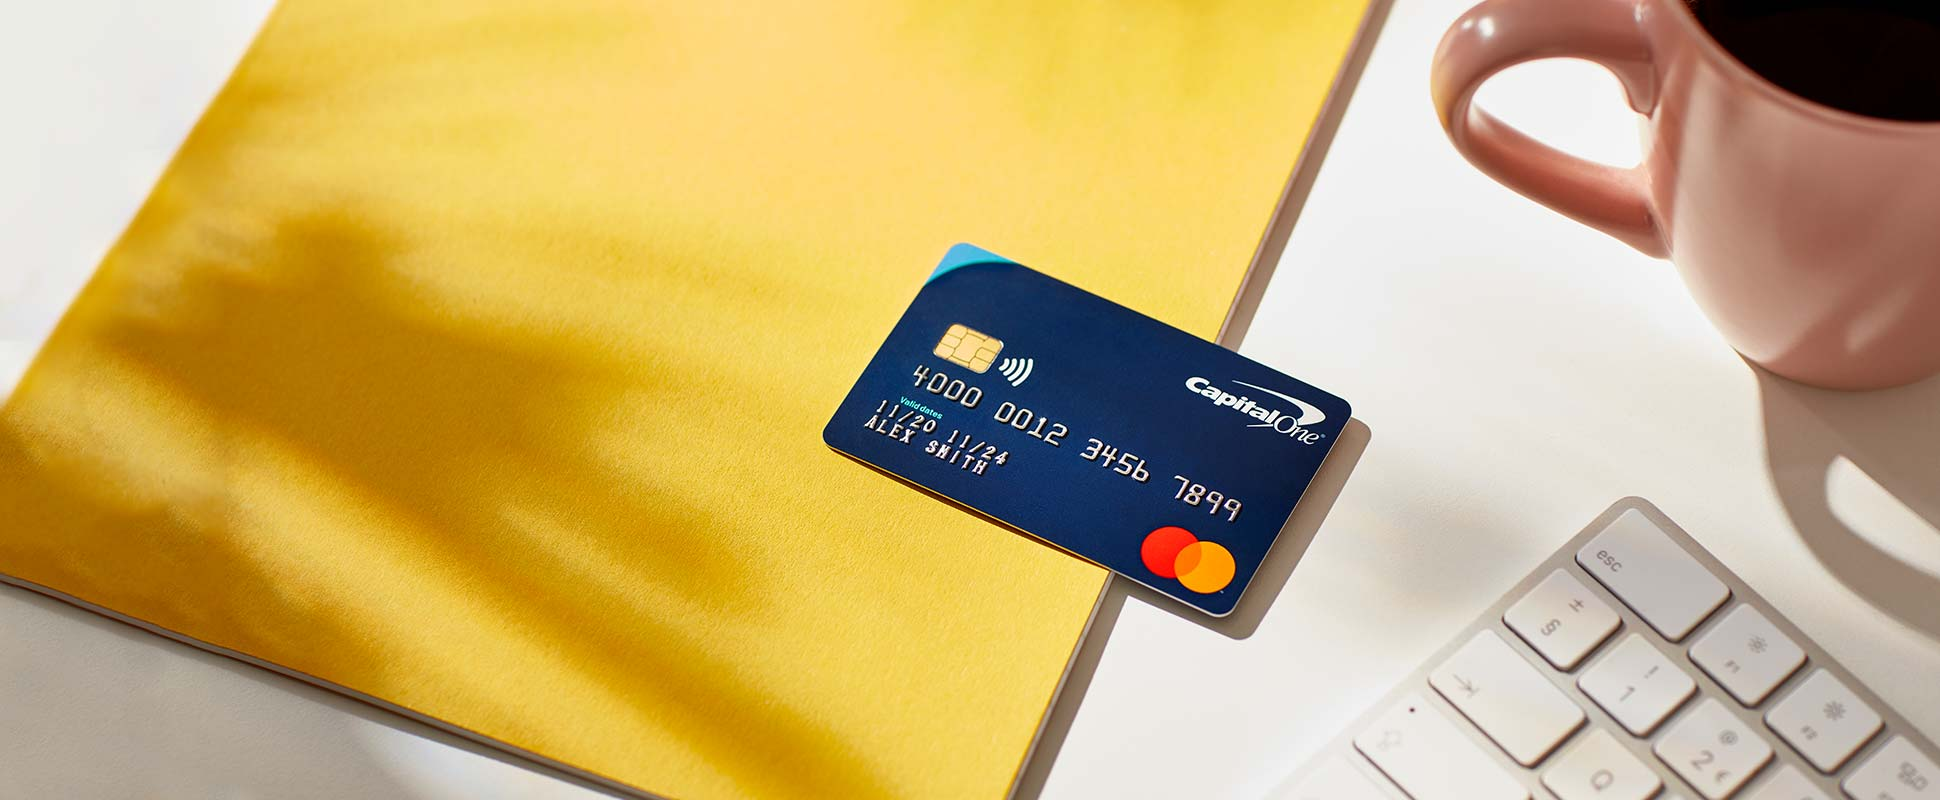 capital one credit card on desk